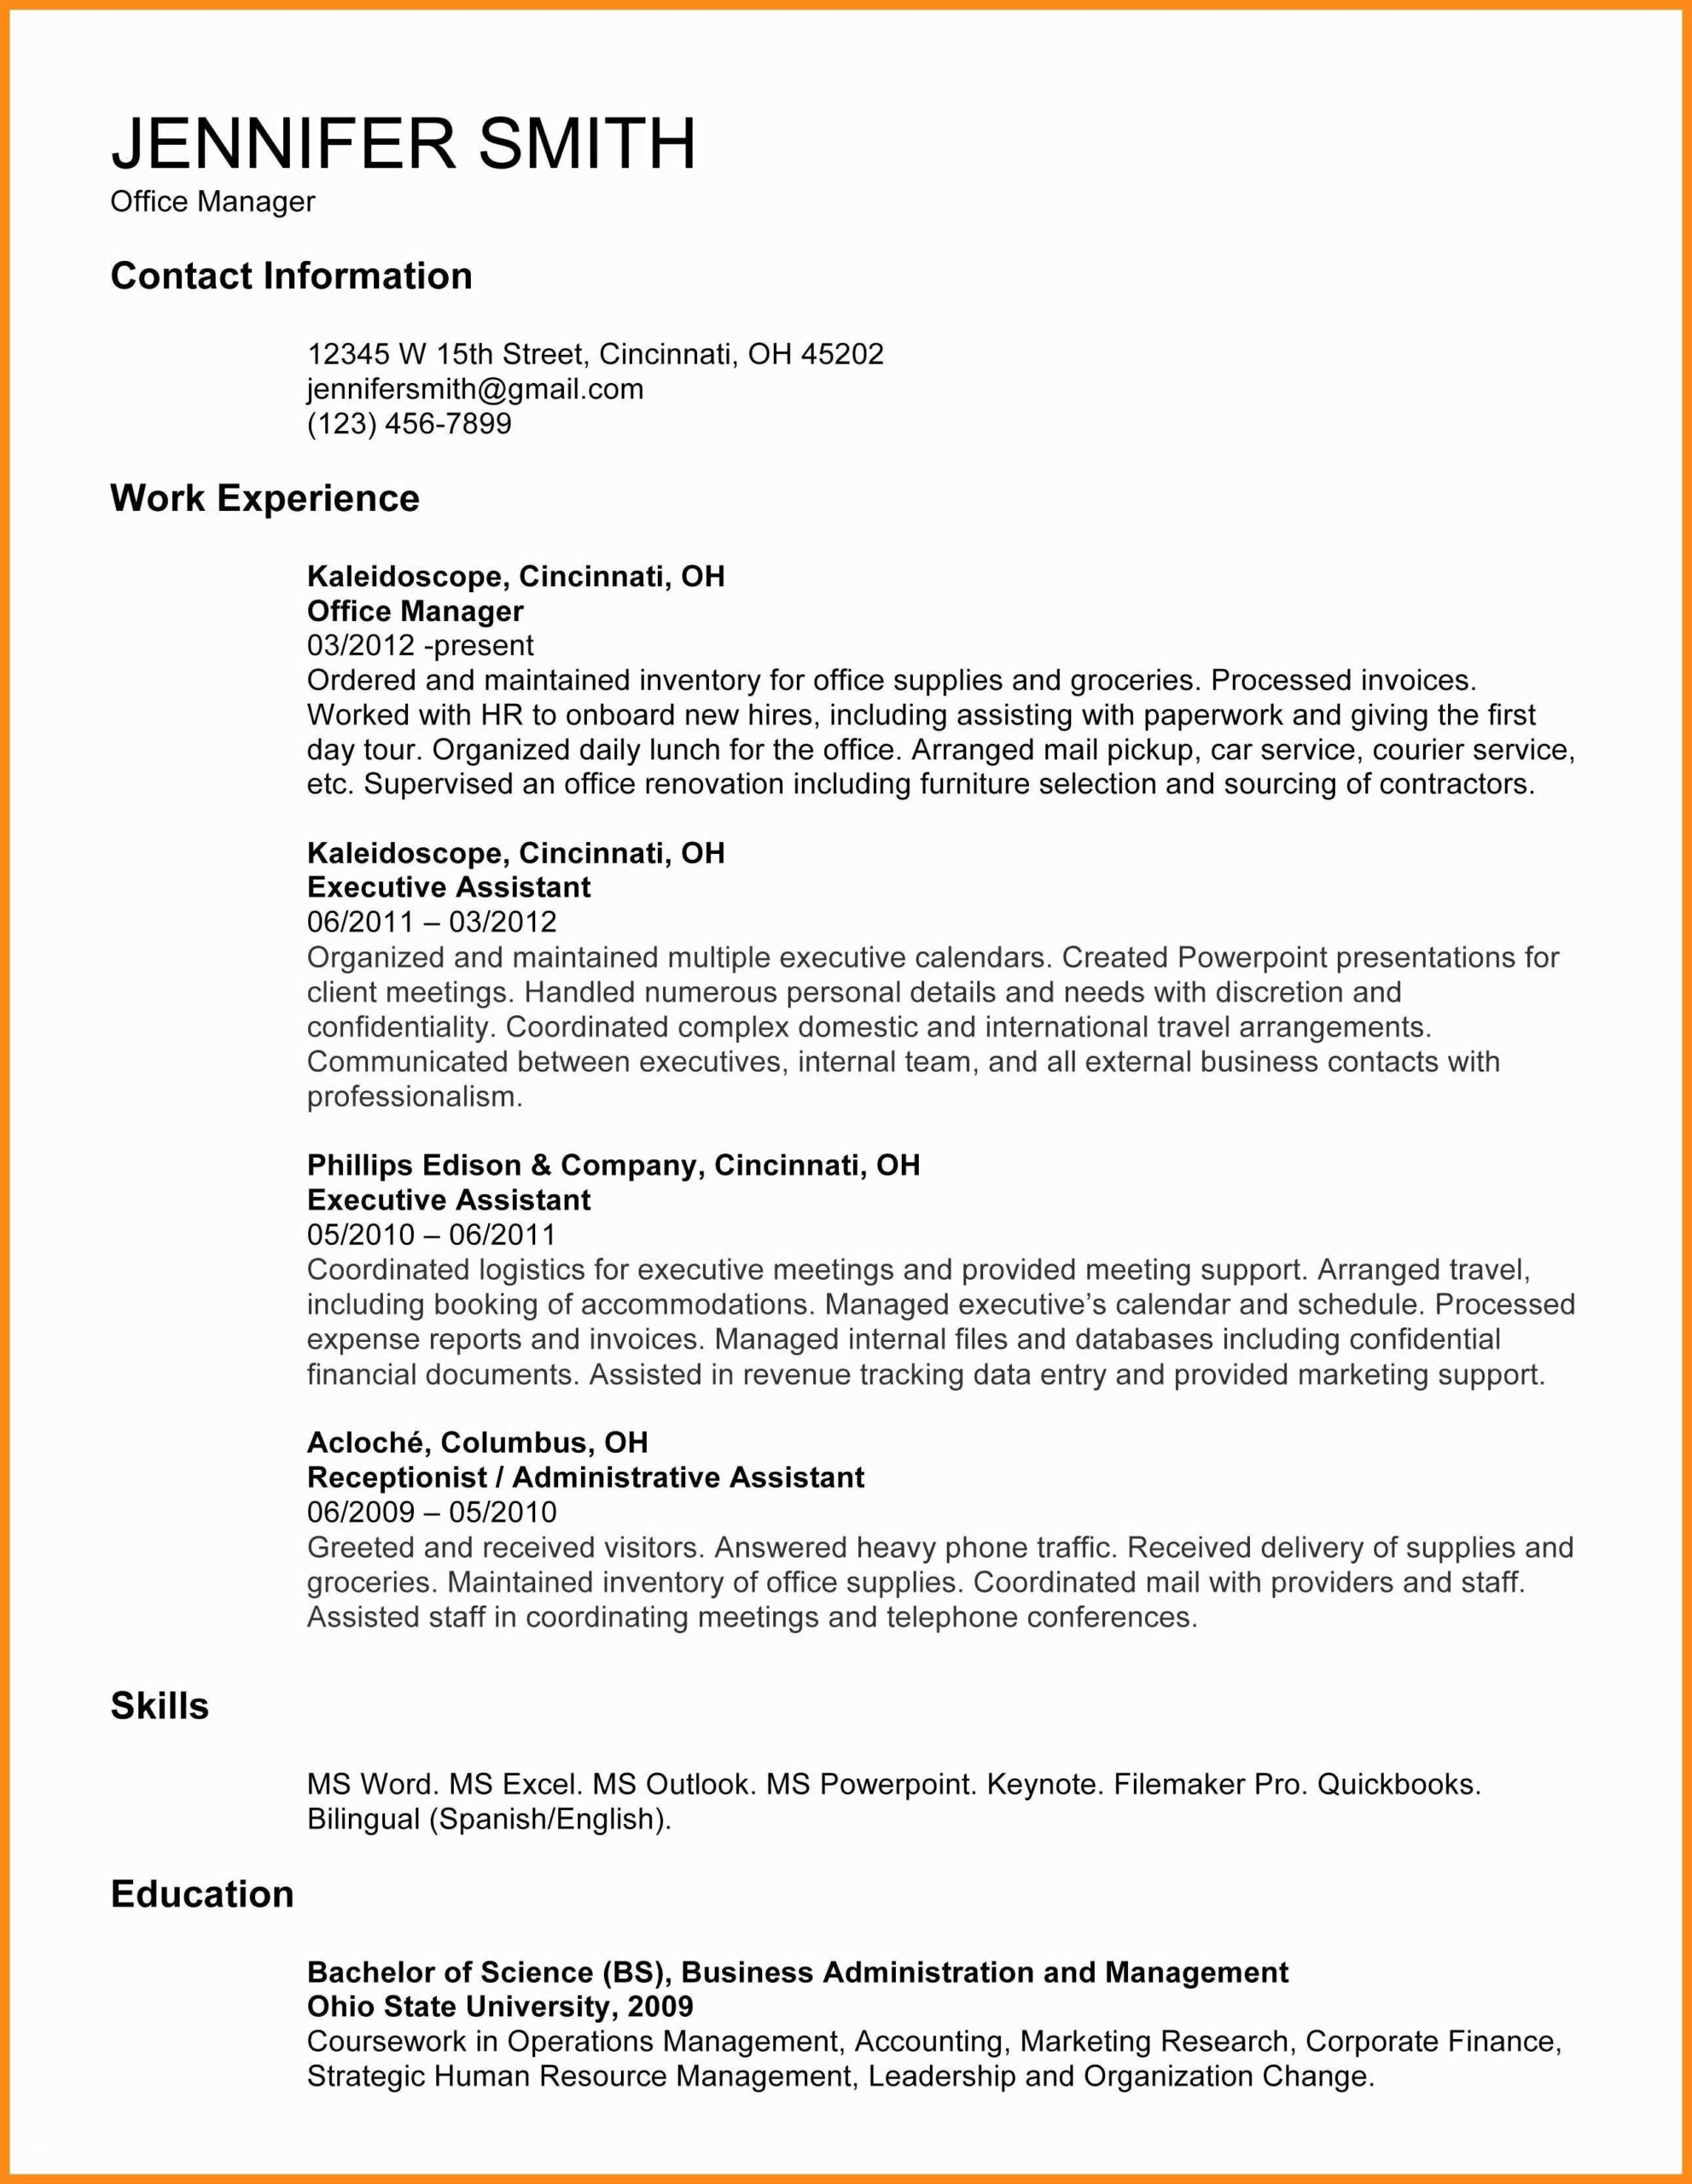 wall street oasis resume template awesome ministry templates for word job examples Resume Ministry Resume Builder